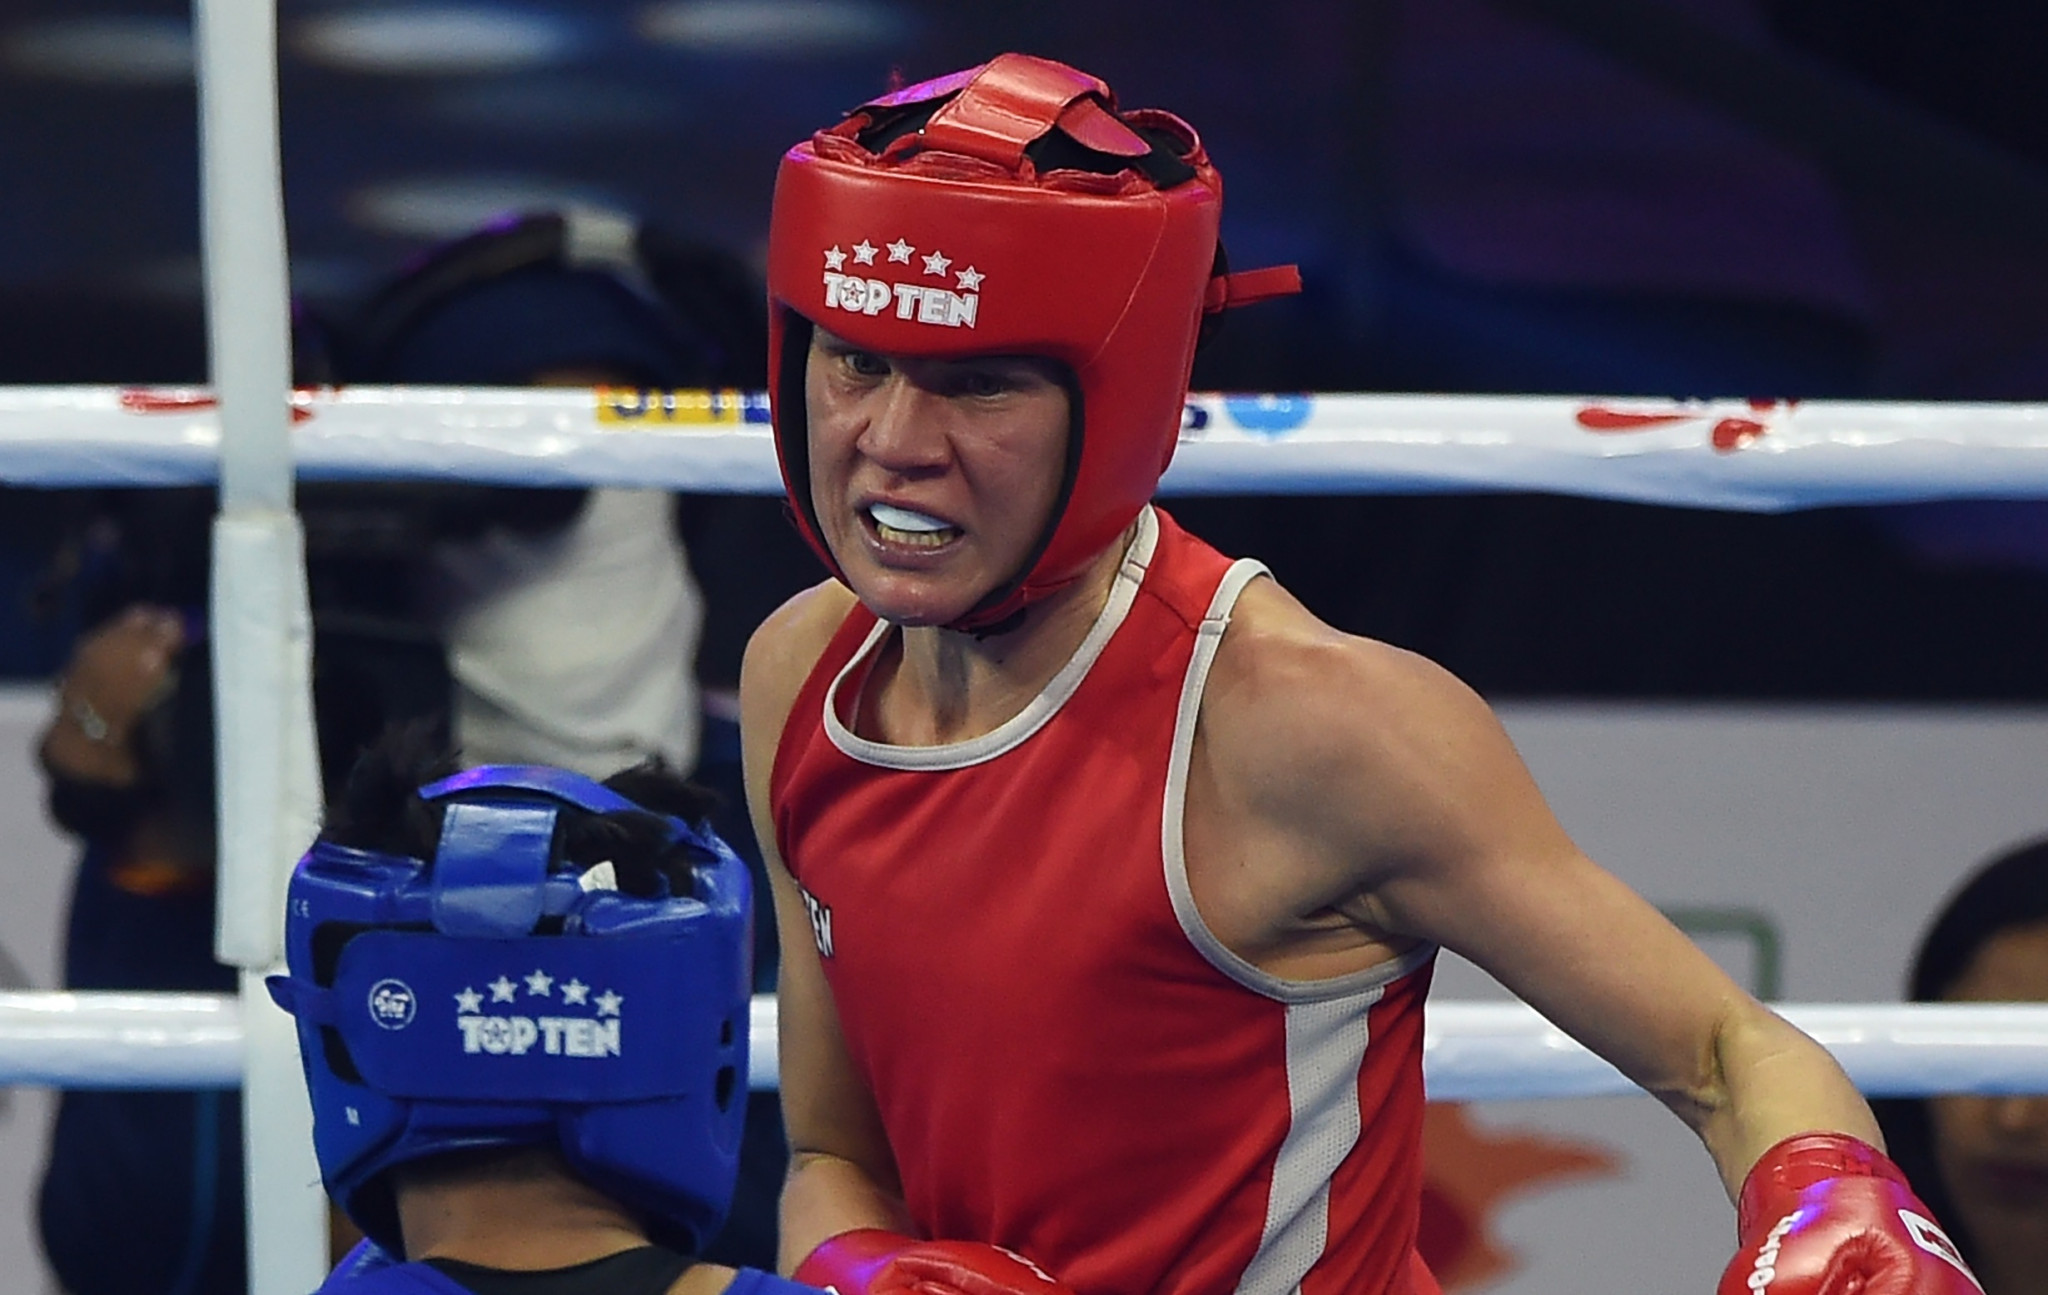 Potkonen impresses at AIBA Women's World Boxing Championships with big-hitters absent